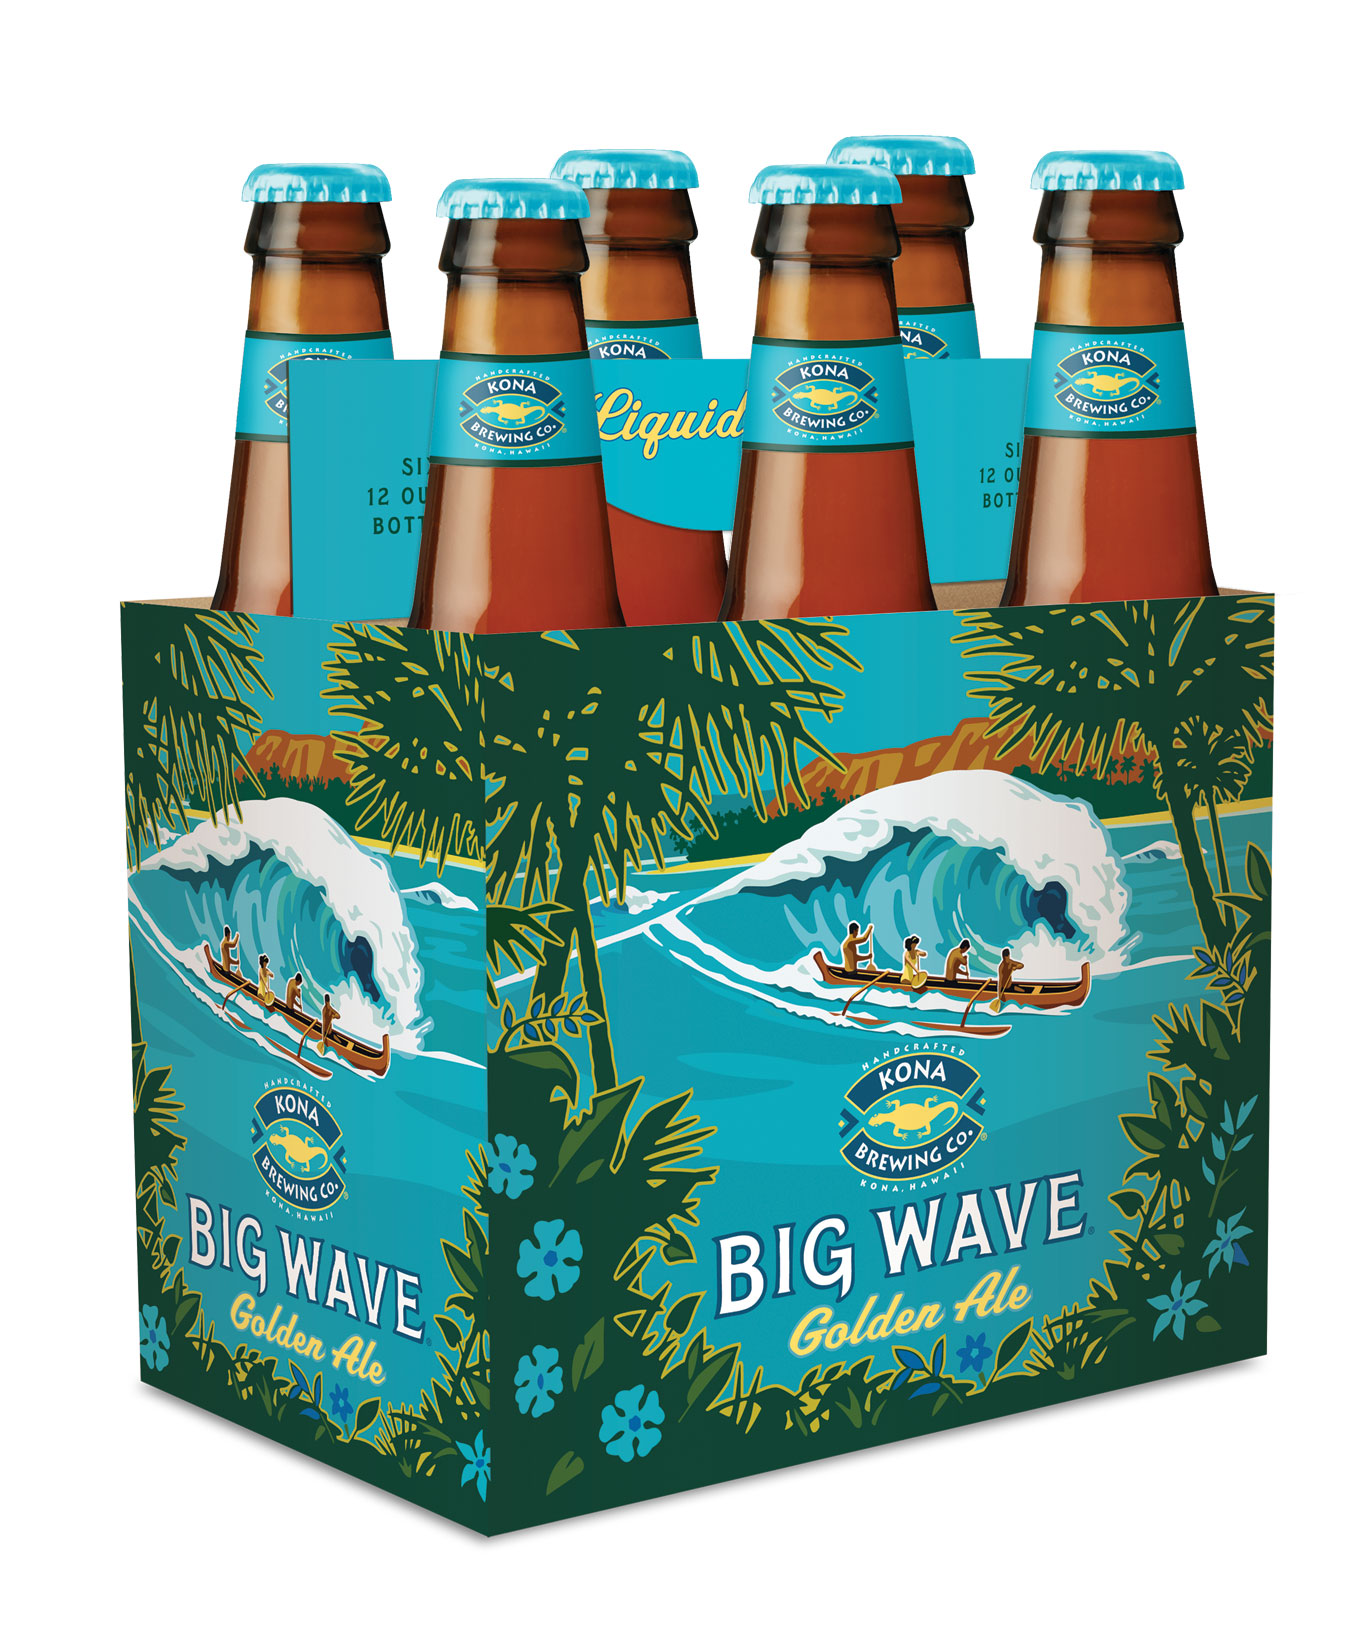 Big Wave Golden Ale From Kona Brewing Company Hits The